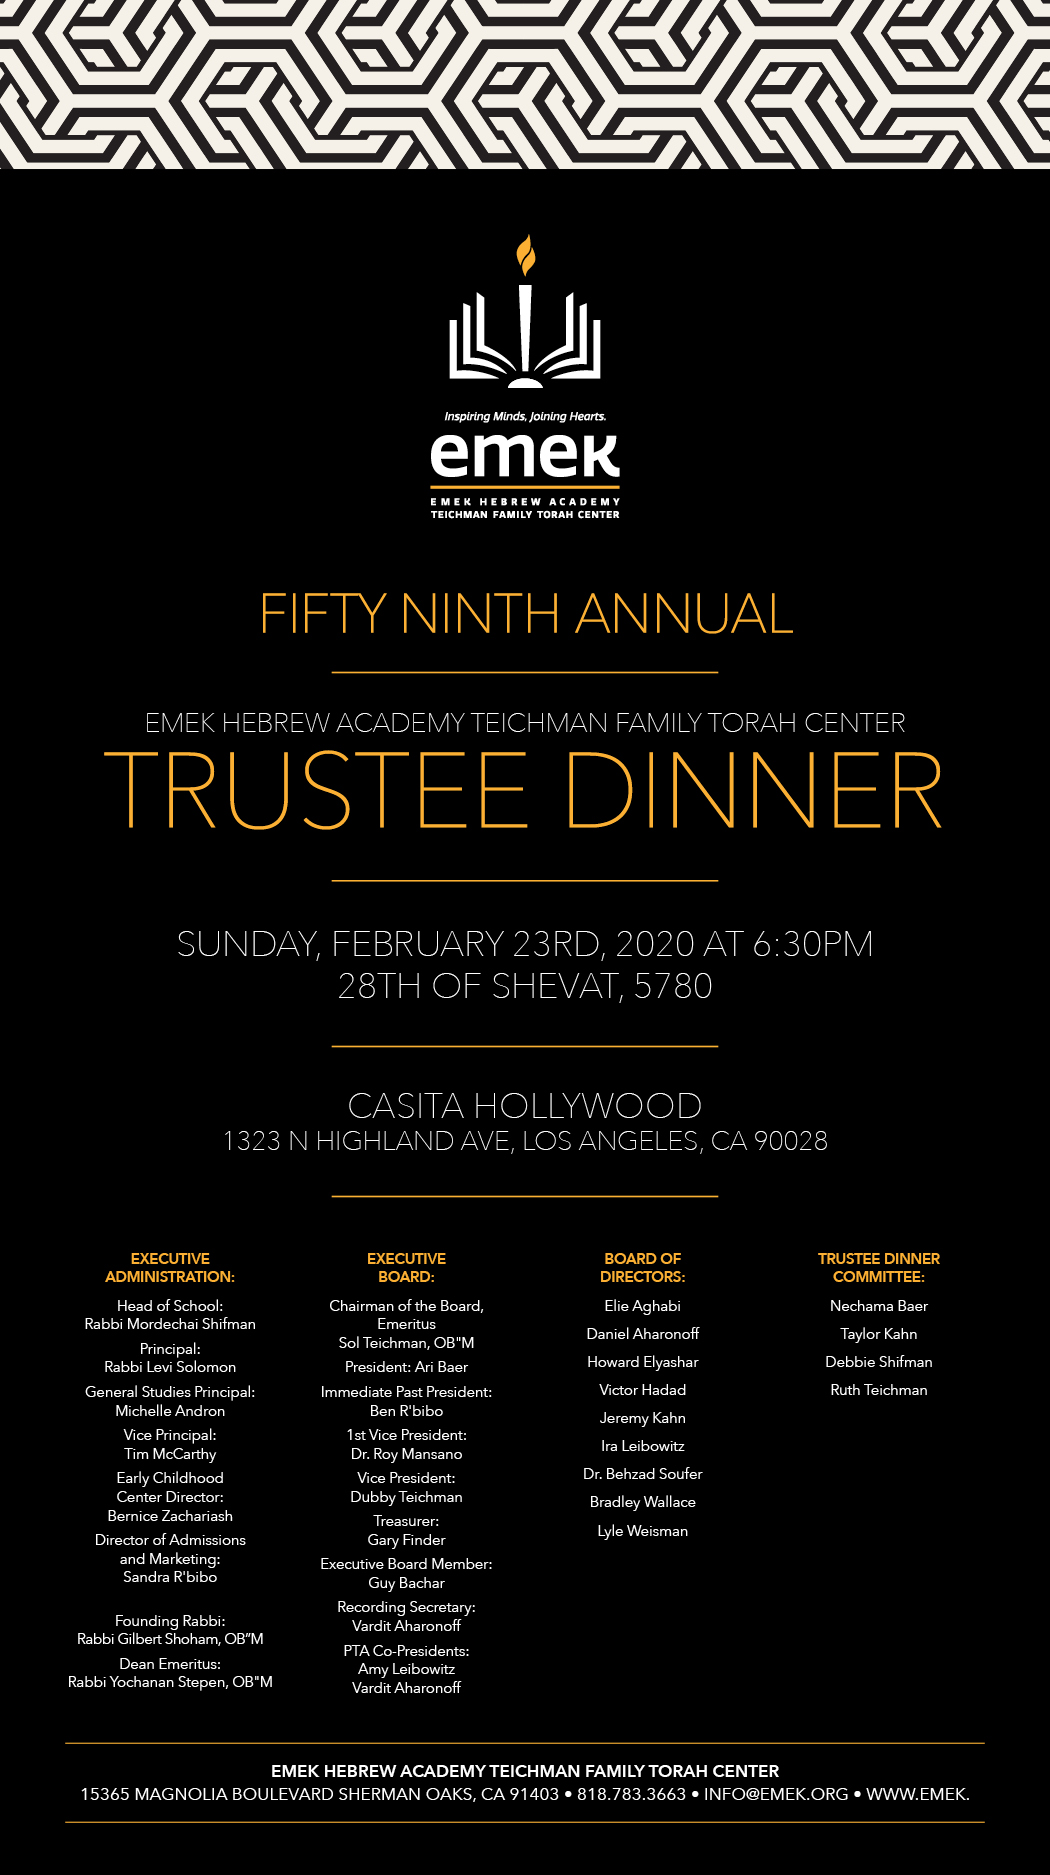 TrusteeDinner2020_DigitalInvite.jpg